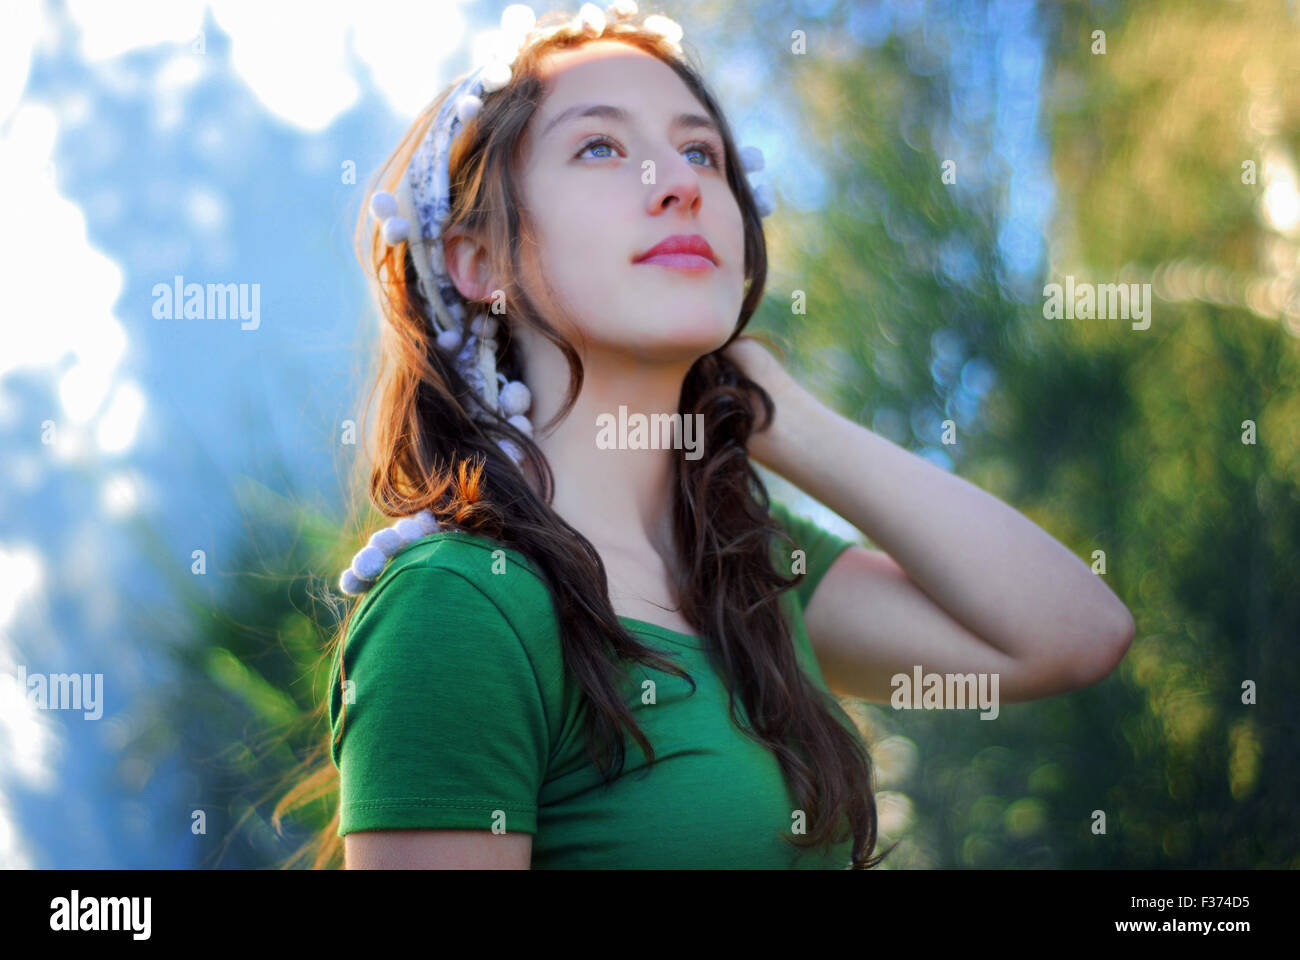 beautiful girl with blue eyes looking at the sky - Stock Image